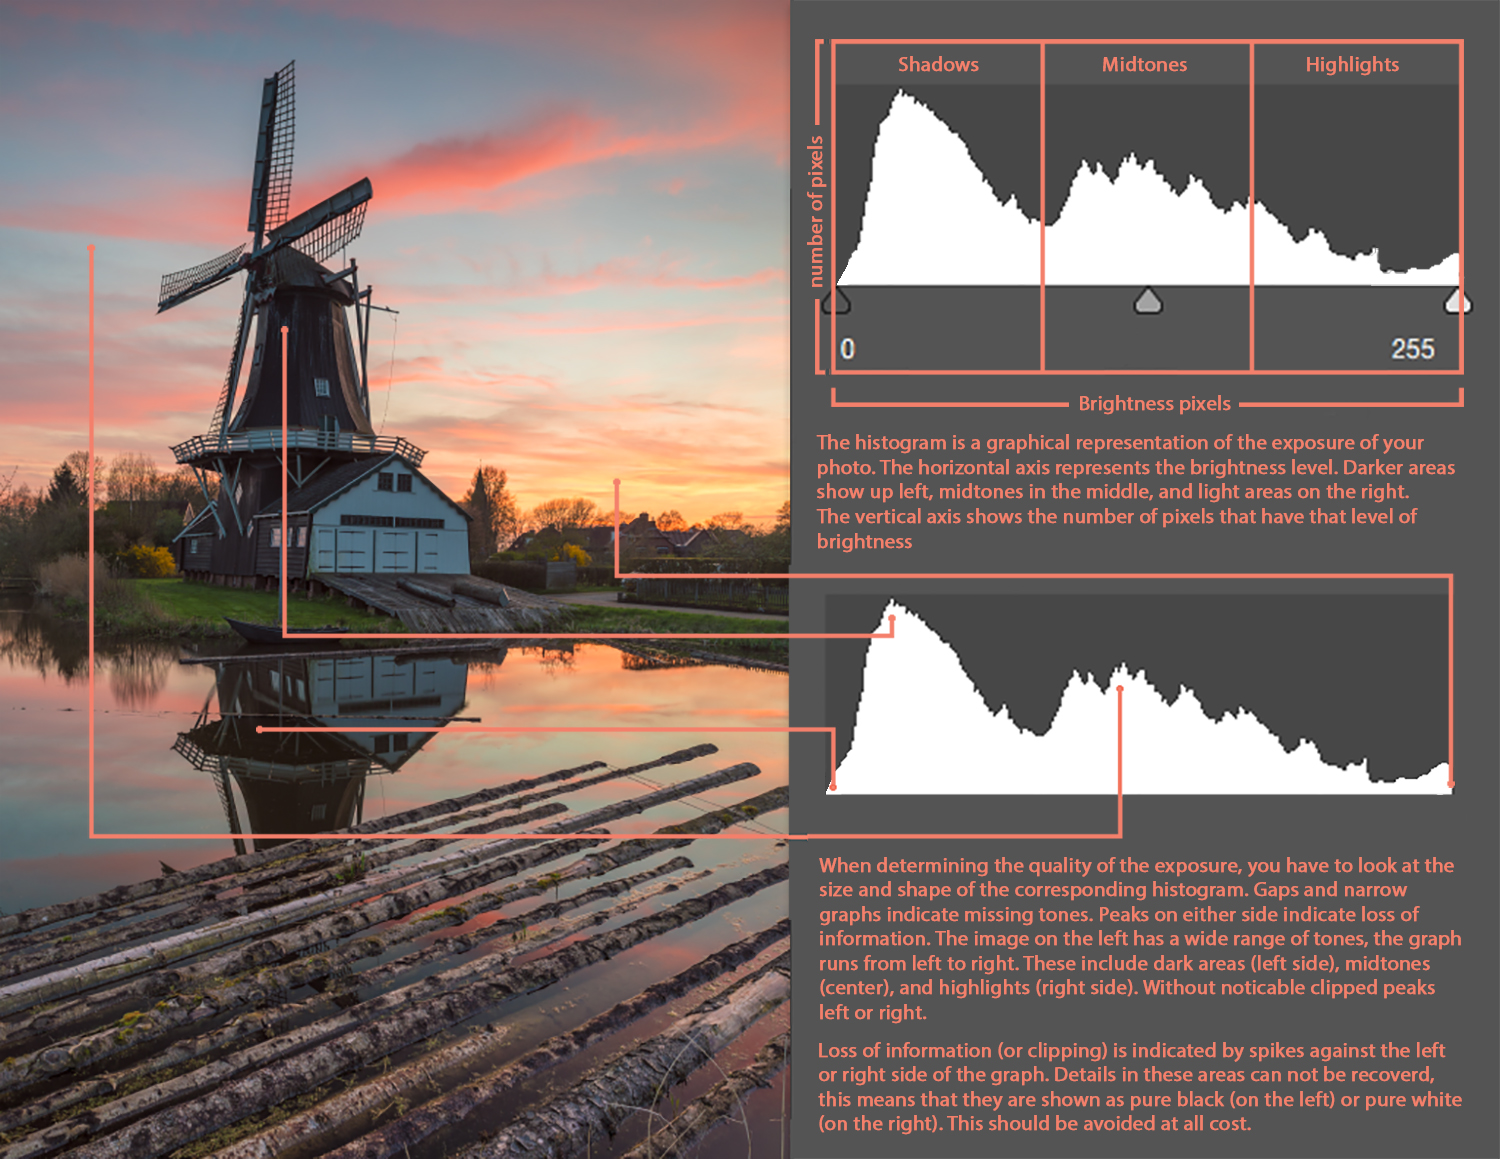 Image 5: The histogram explained